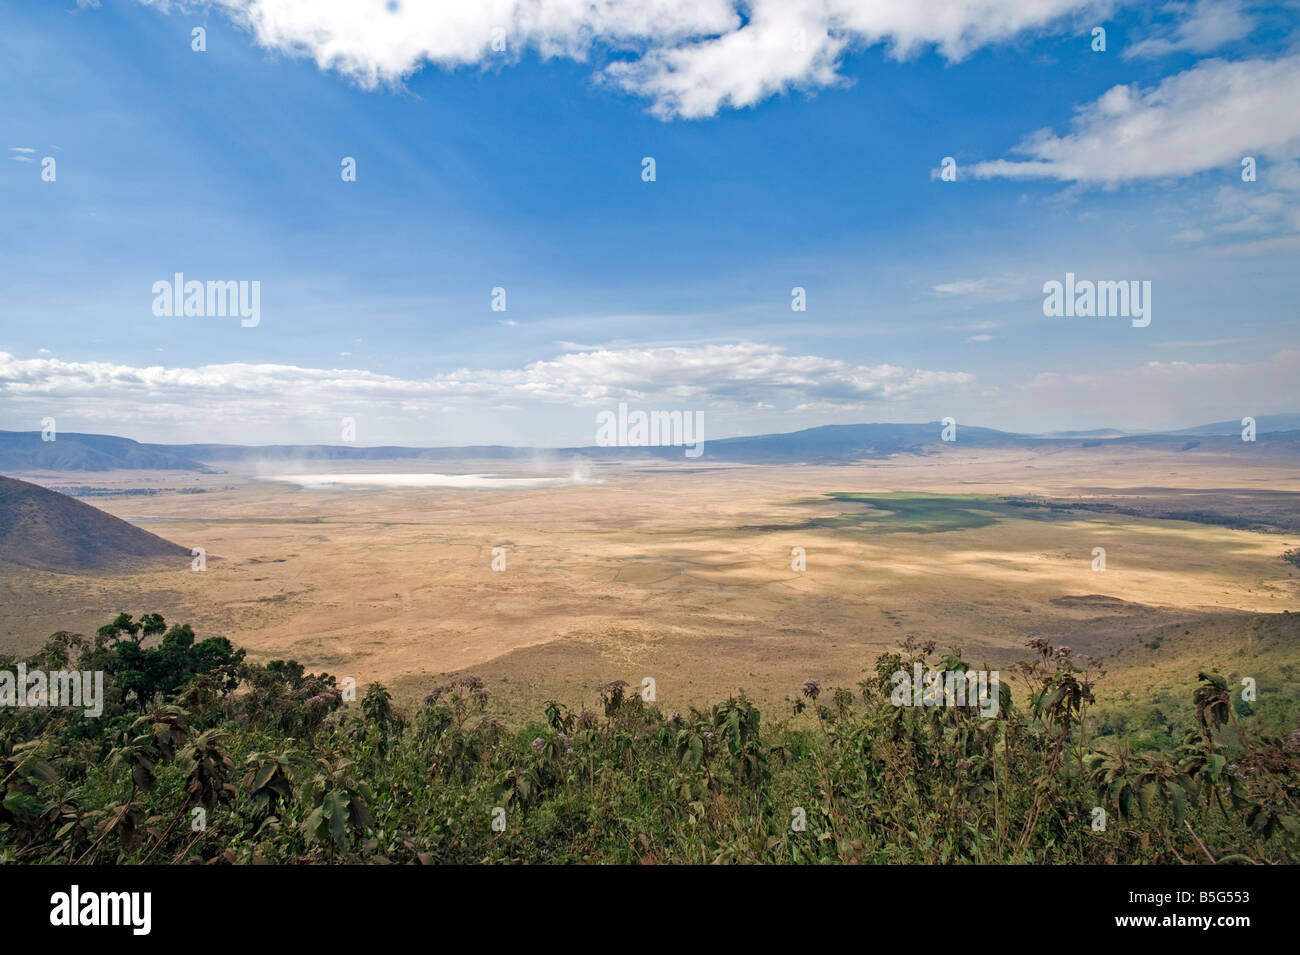 Panoramic view of Ngorongoro Crater during the dry season The crater is about 600m deep and 20km across Tanzania Stock Photo